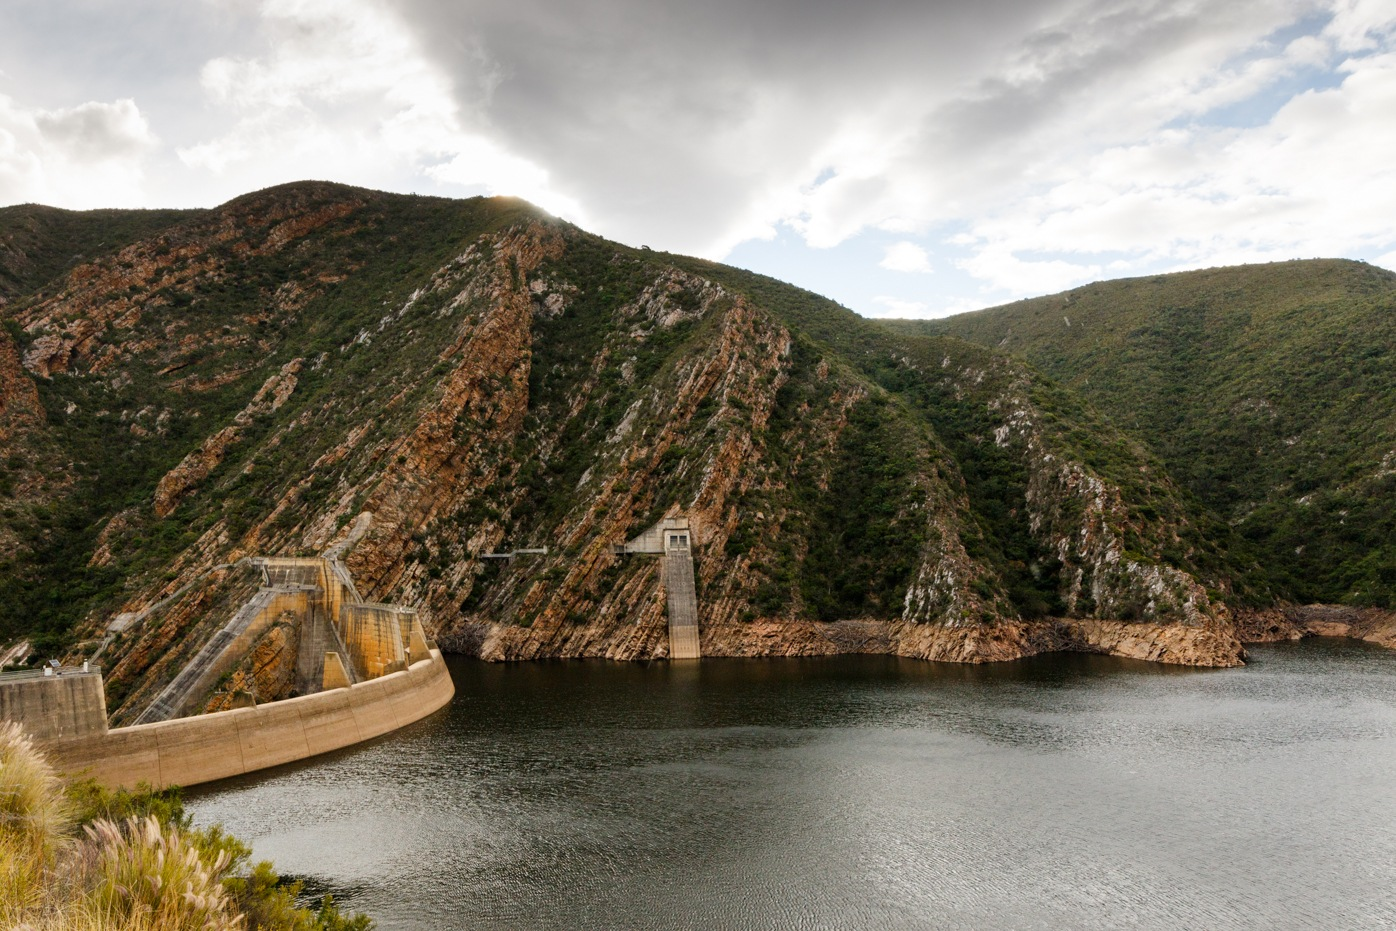 Low water level at the Kouga Dam by Mark de Scande